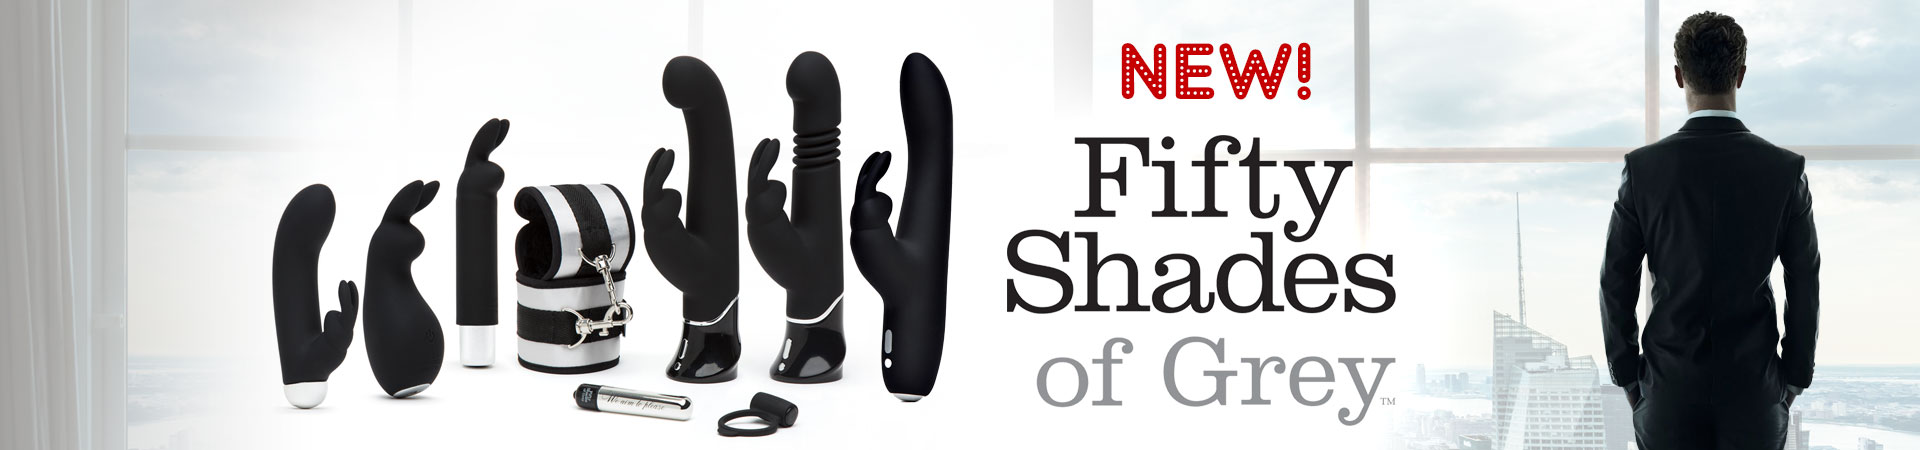 New Fifty Shades!